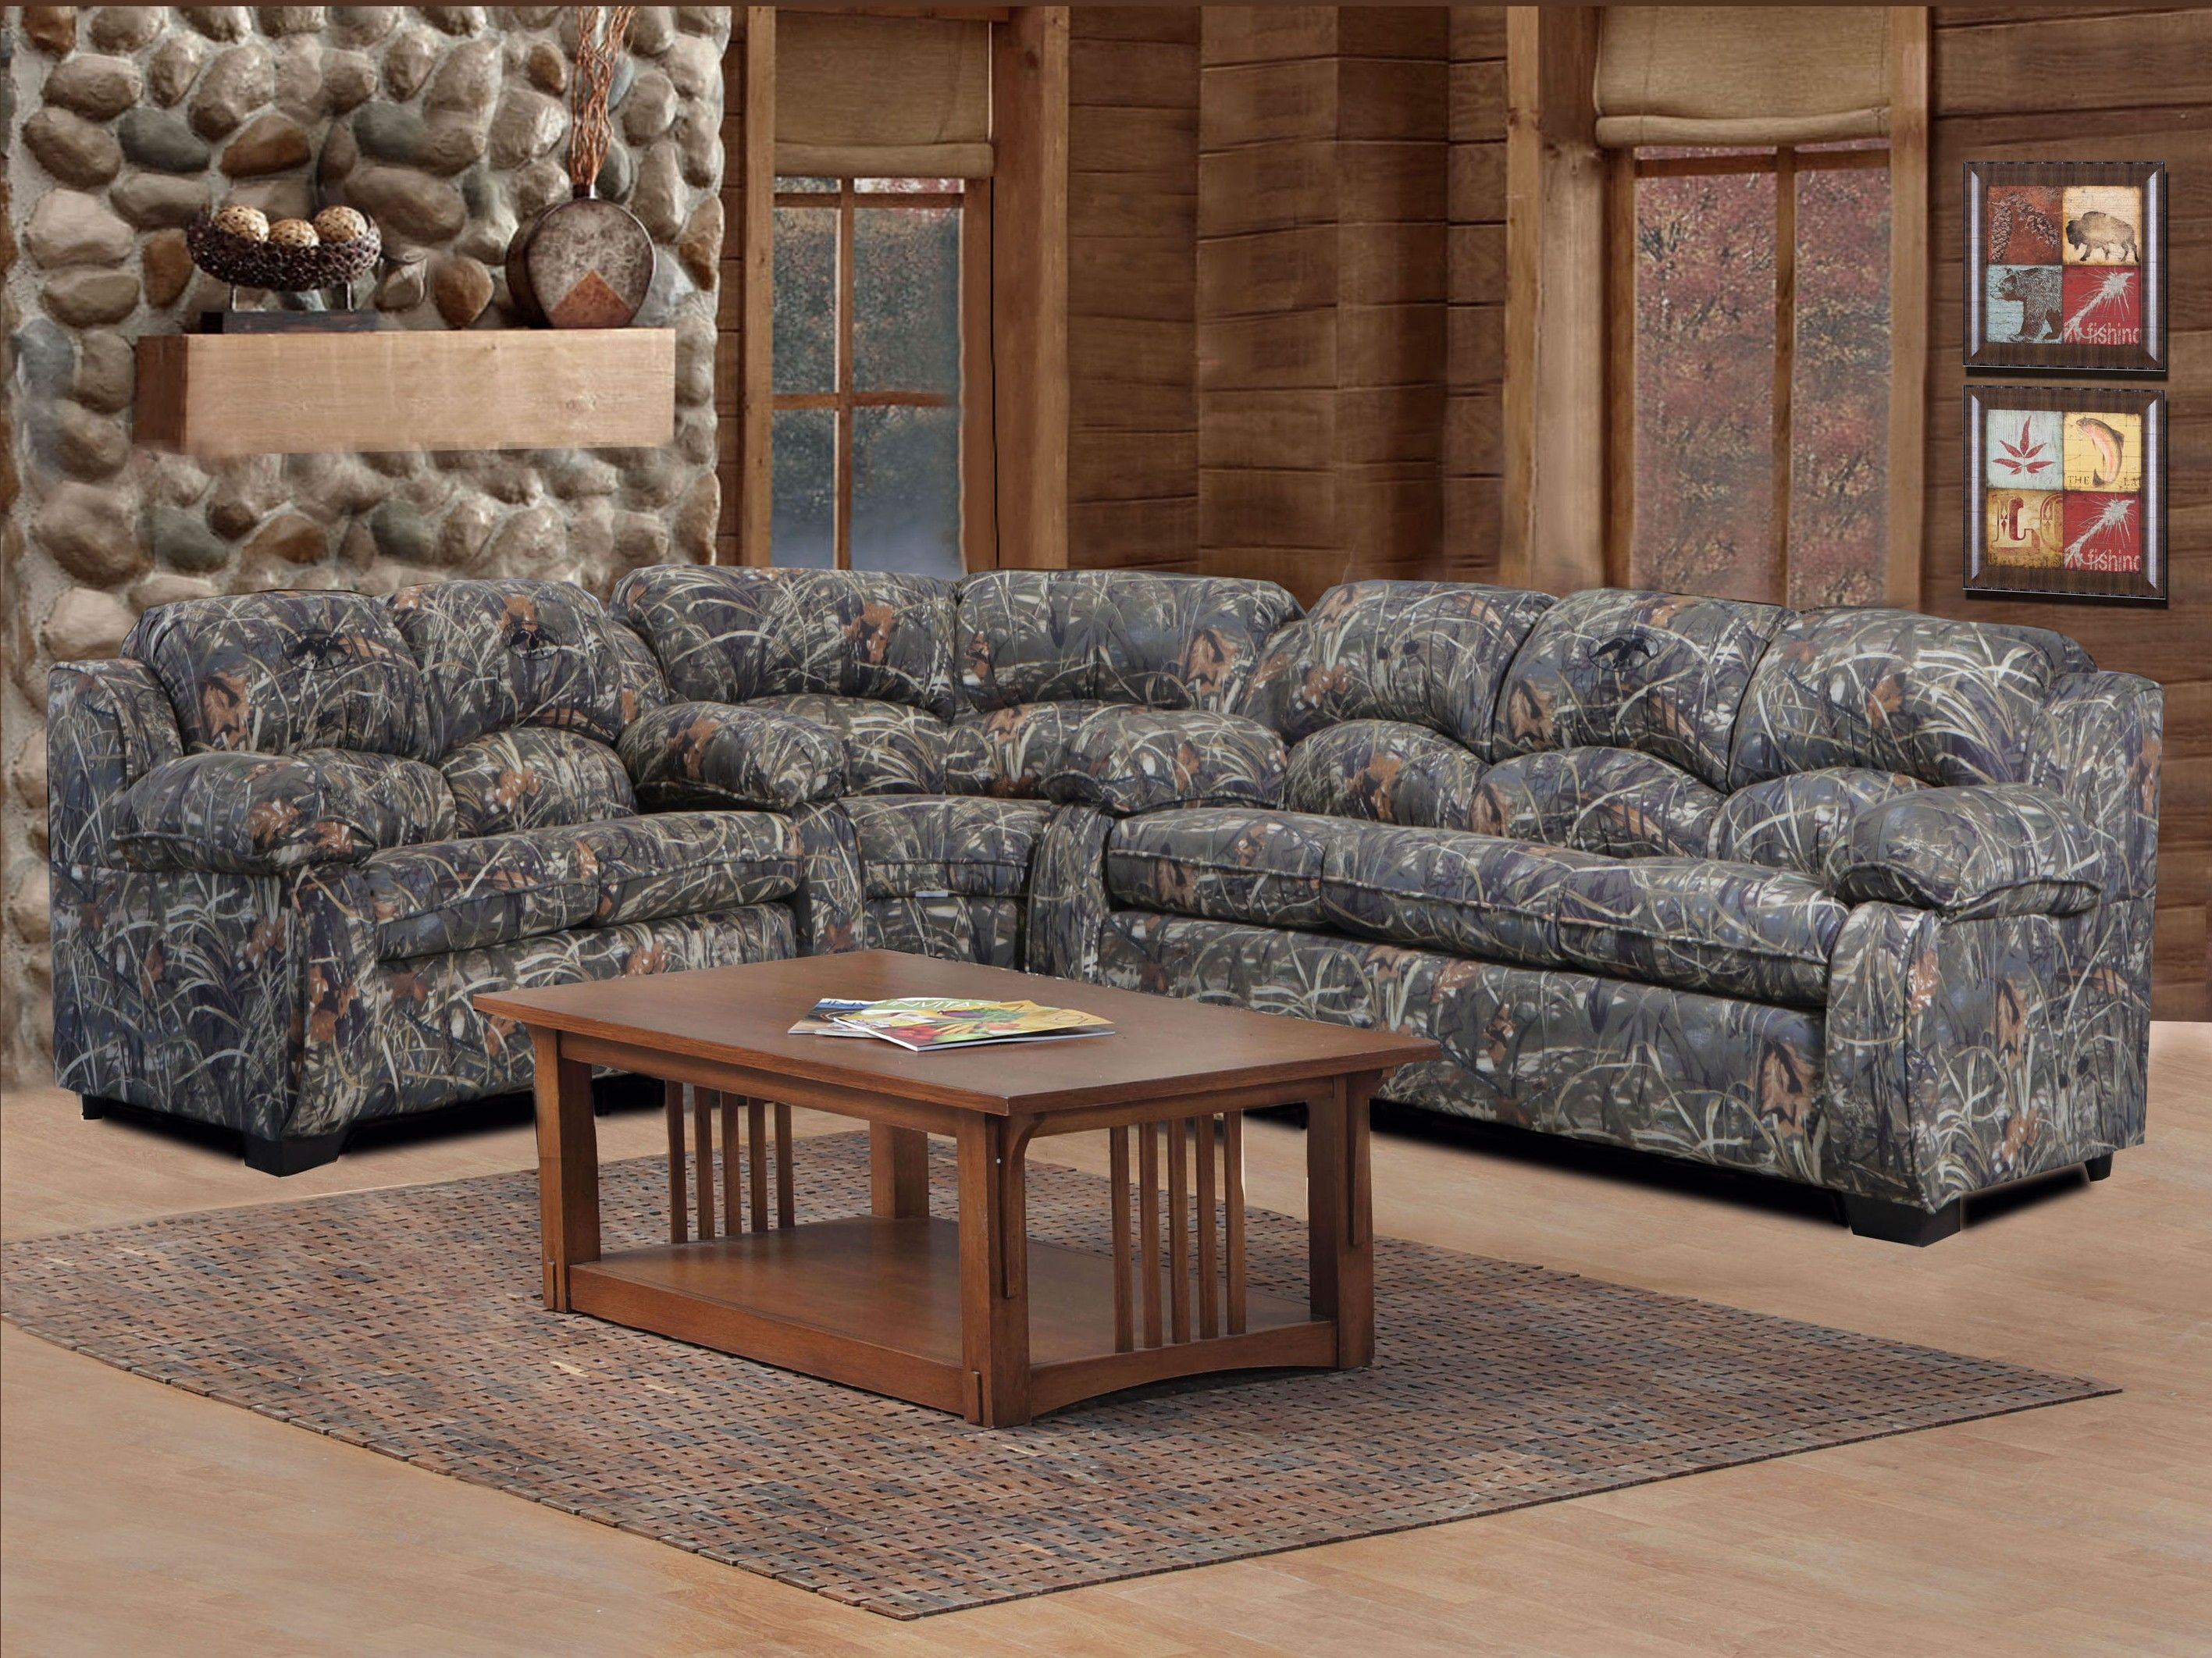 Ordinaire Duck Commander Sectional 3 Piece (Sofa, Loveseat And Wedge   Duck Dynasty | Camouflage  Furniture | Real Tree Max 4 Twill